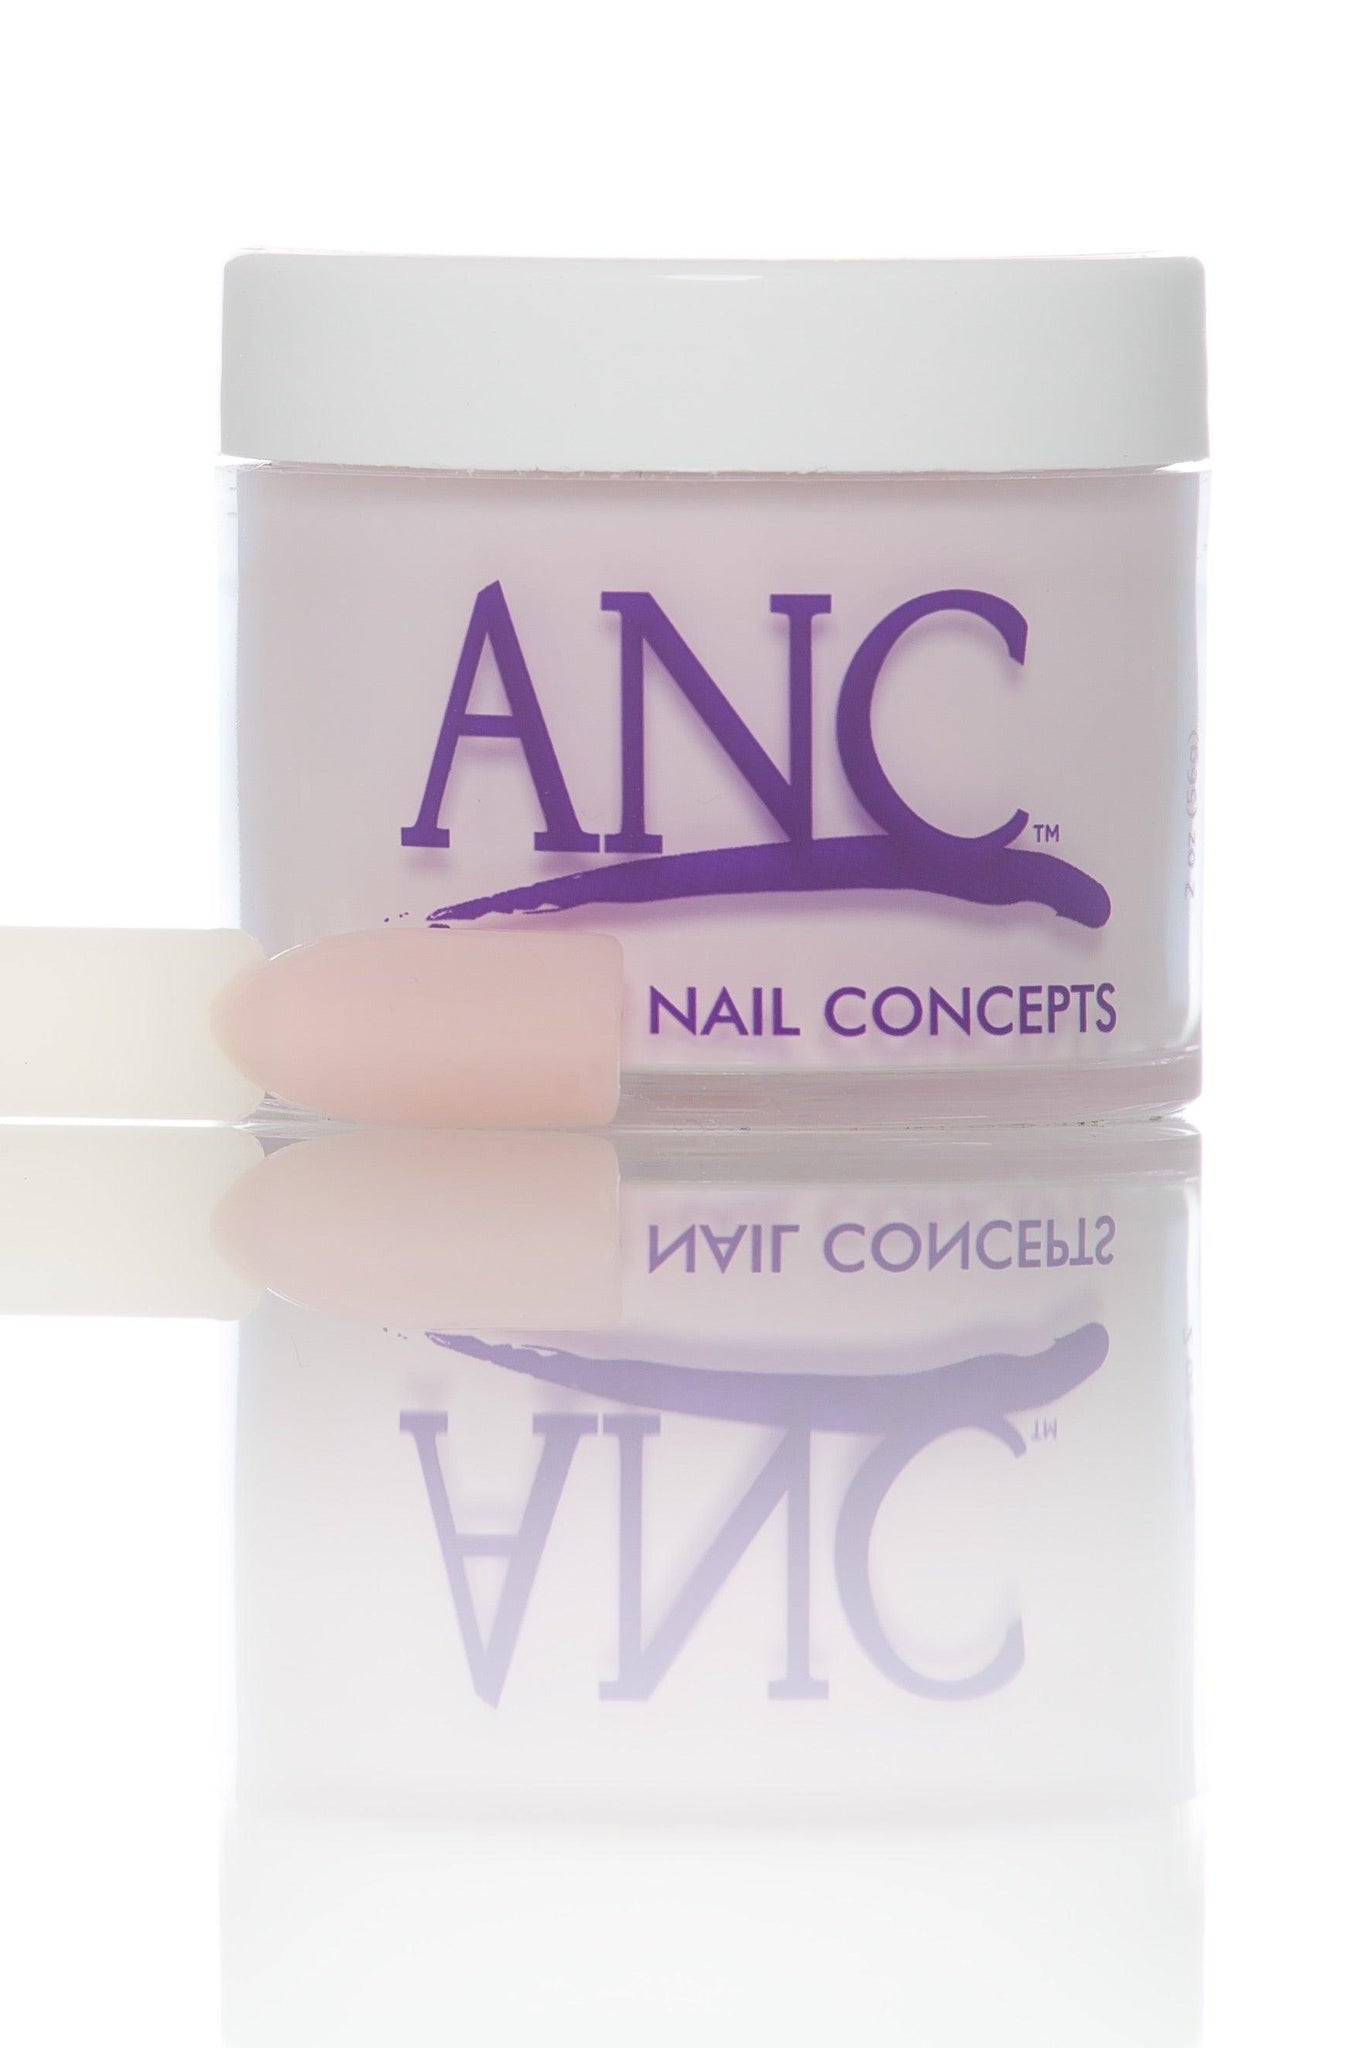 Just Chillin - 175 - Amazing Nail Concept Dip Powder